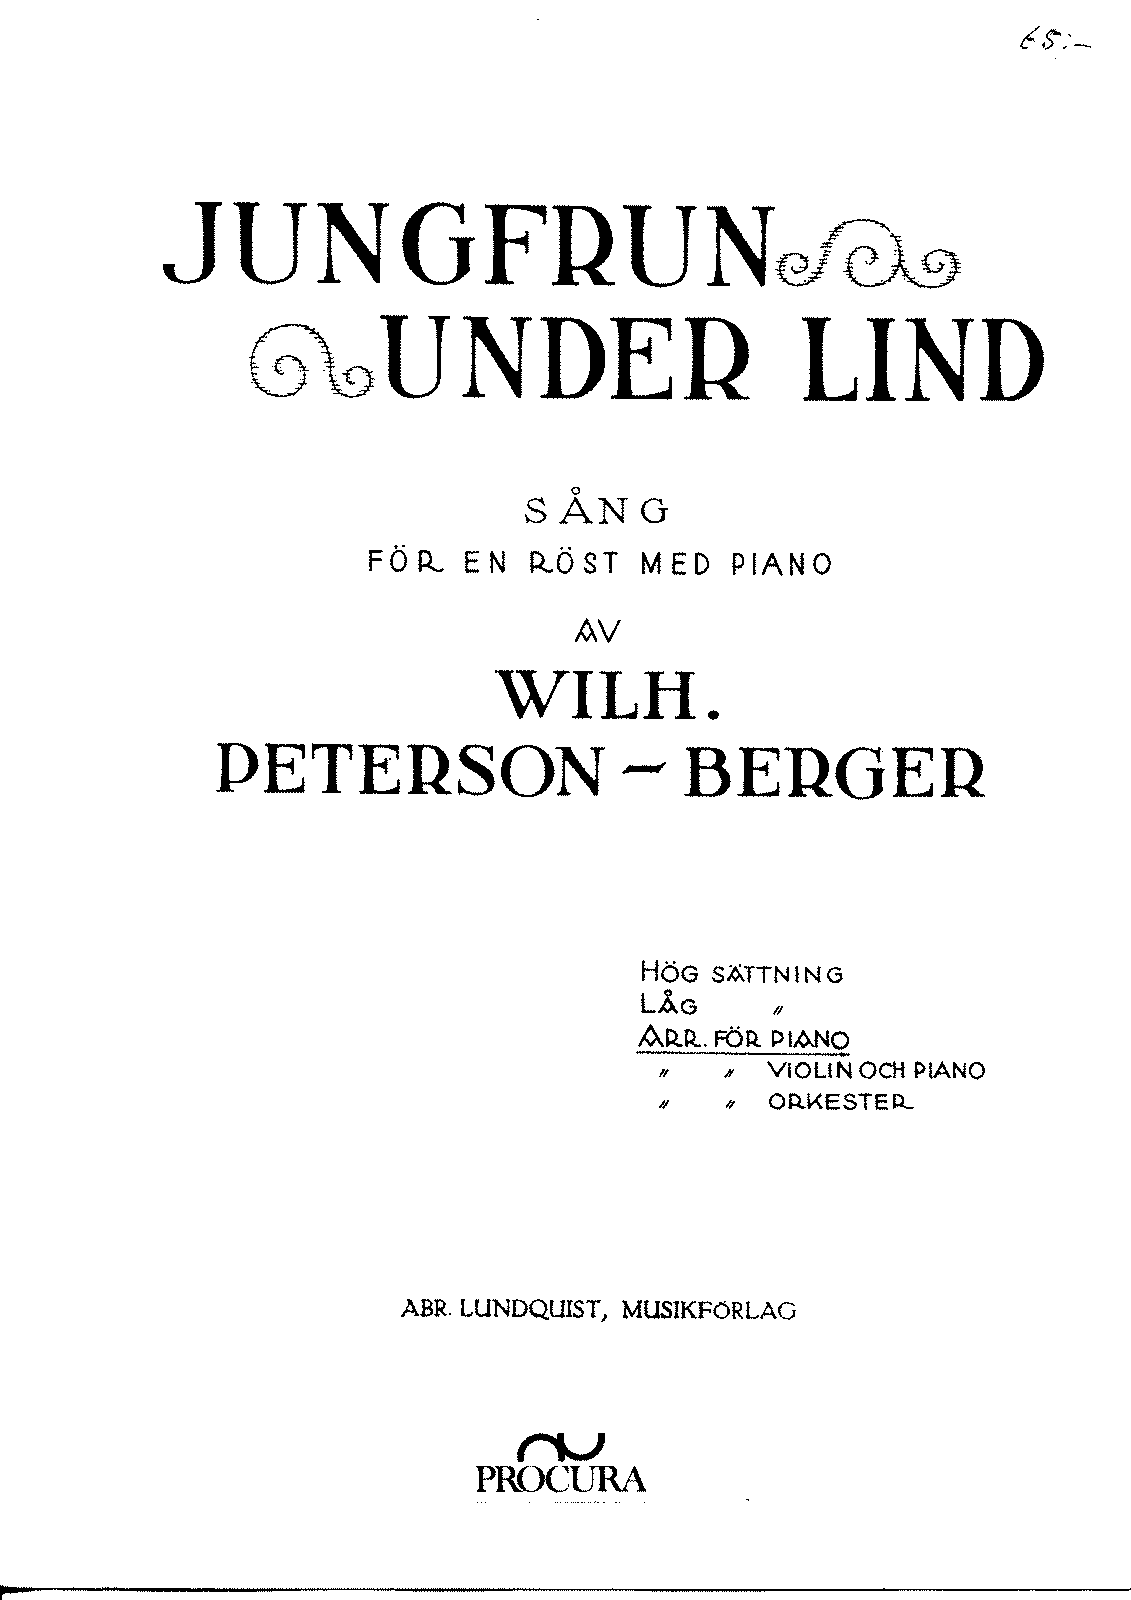 PMLP448836-peterson berger jungfrun under lind piano042.pdf